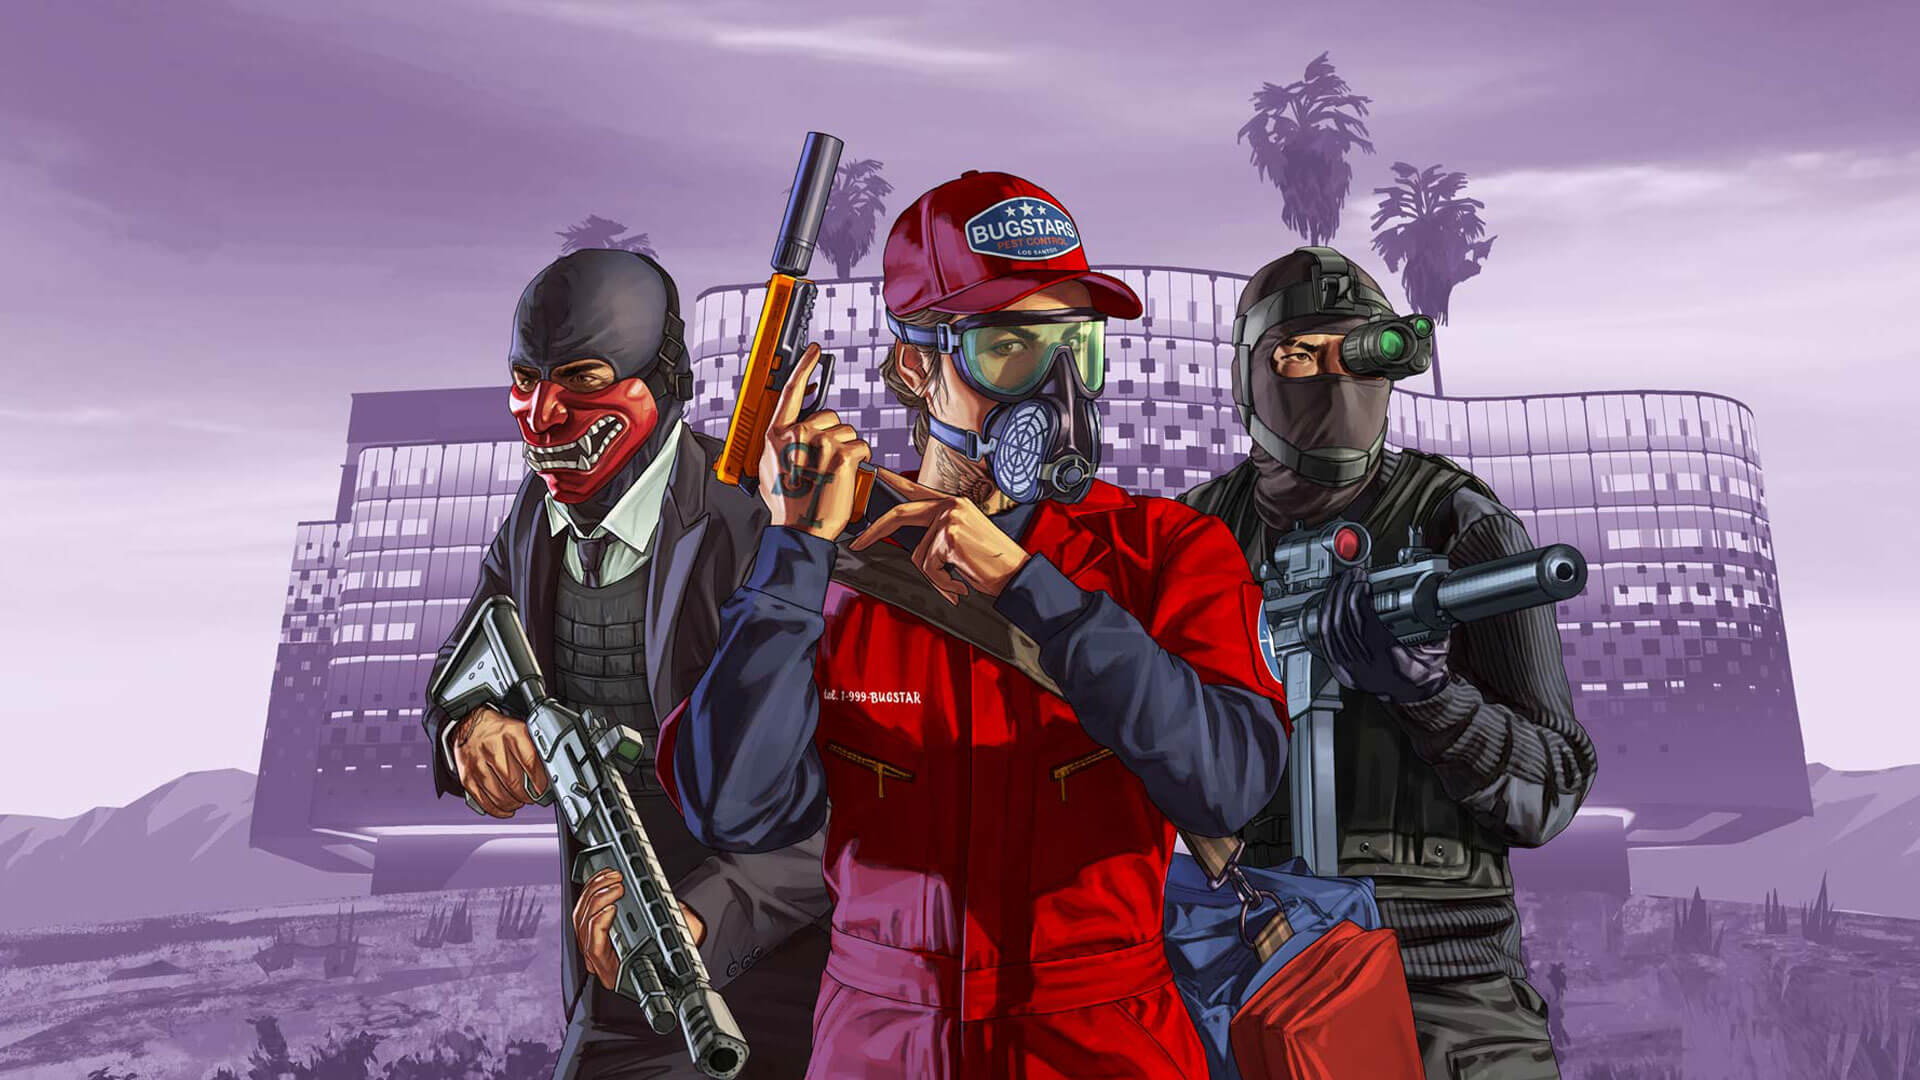 GTA Online Is Bigger Than Ever, Let's Review it in 2020